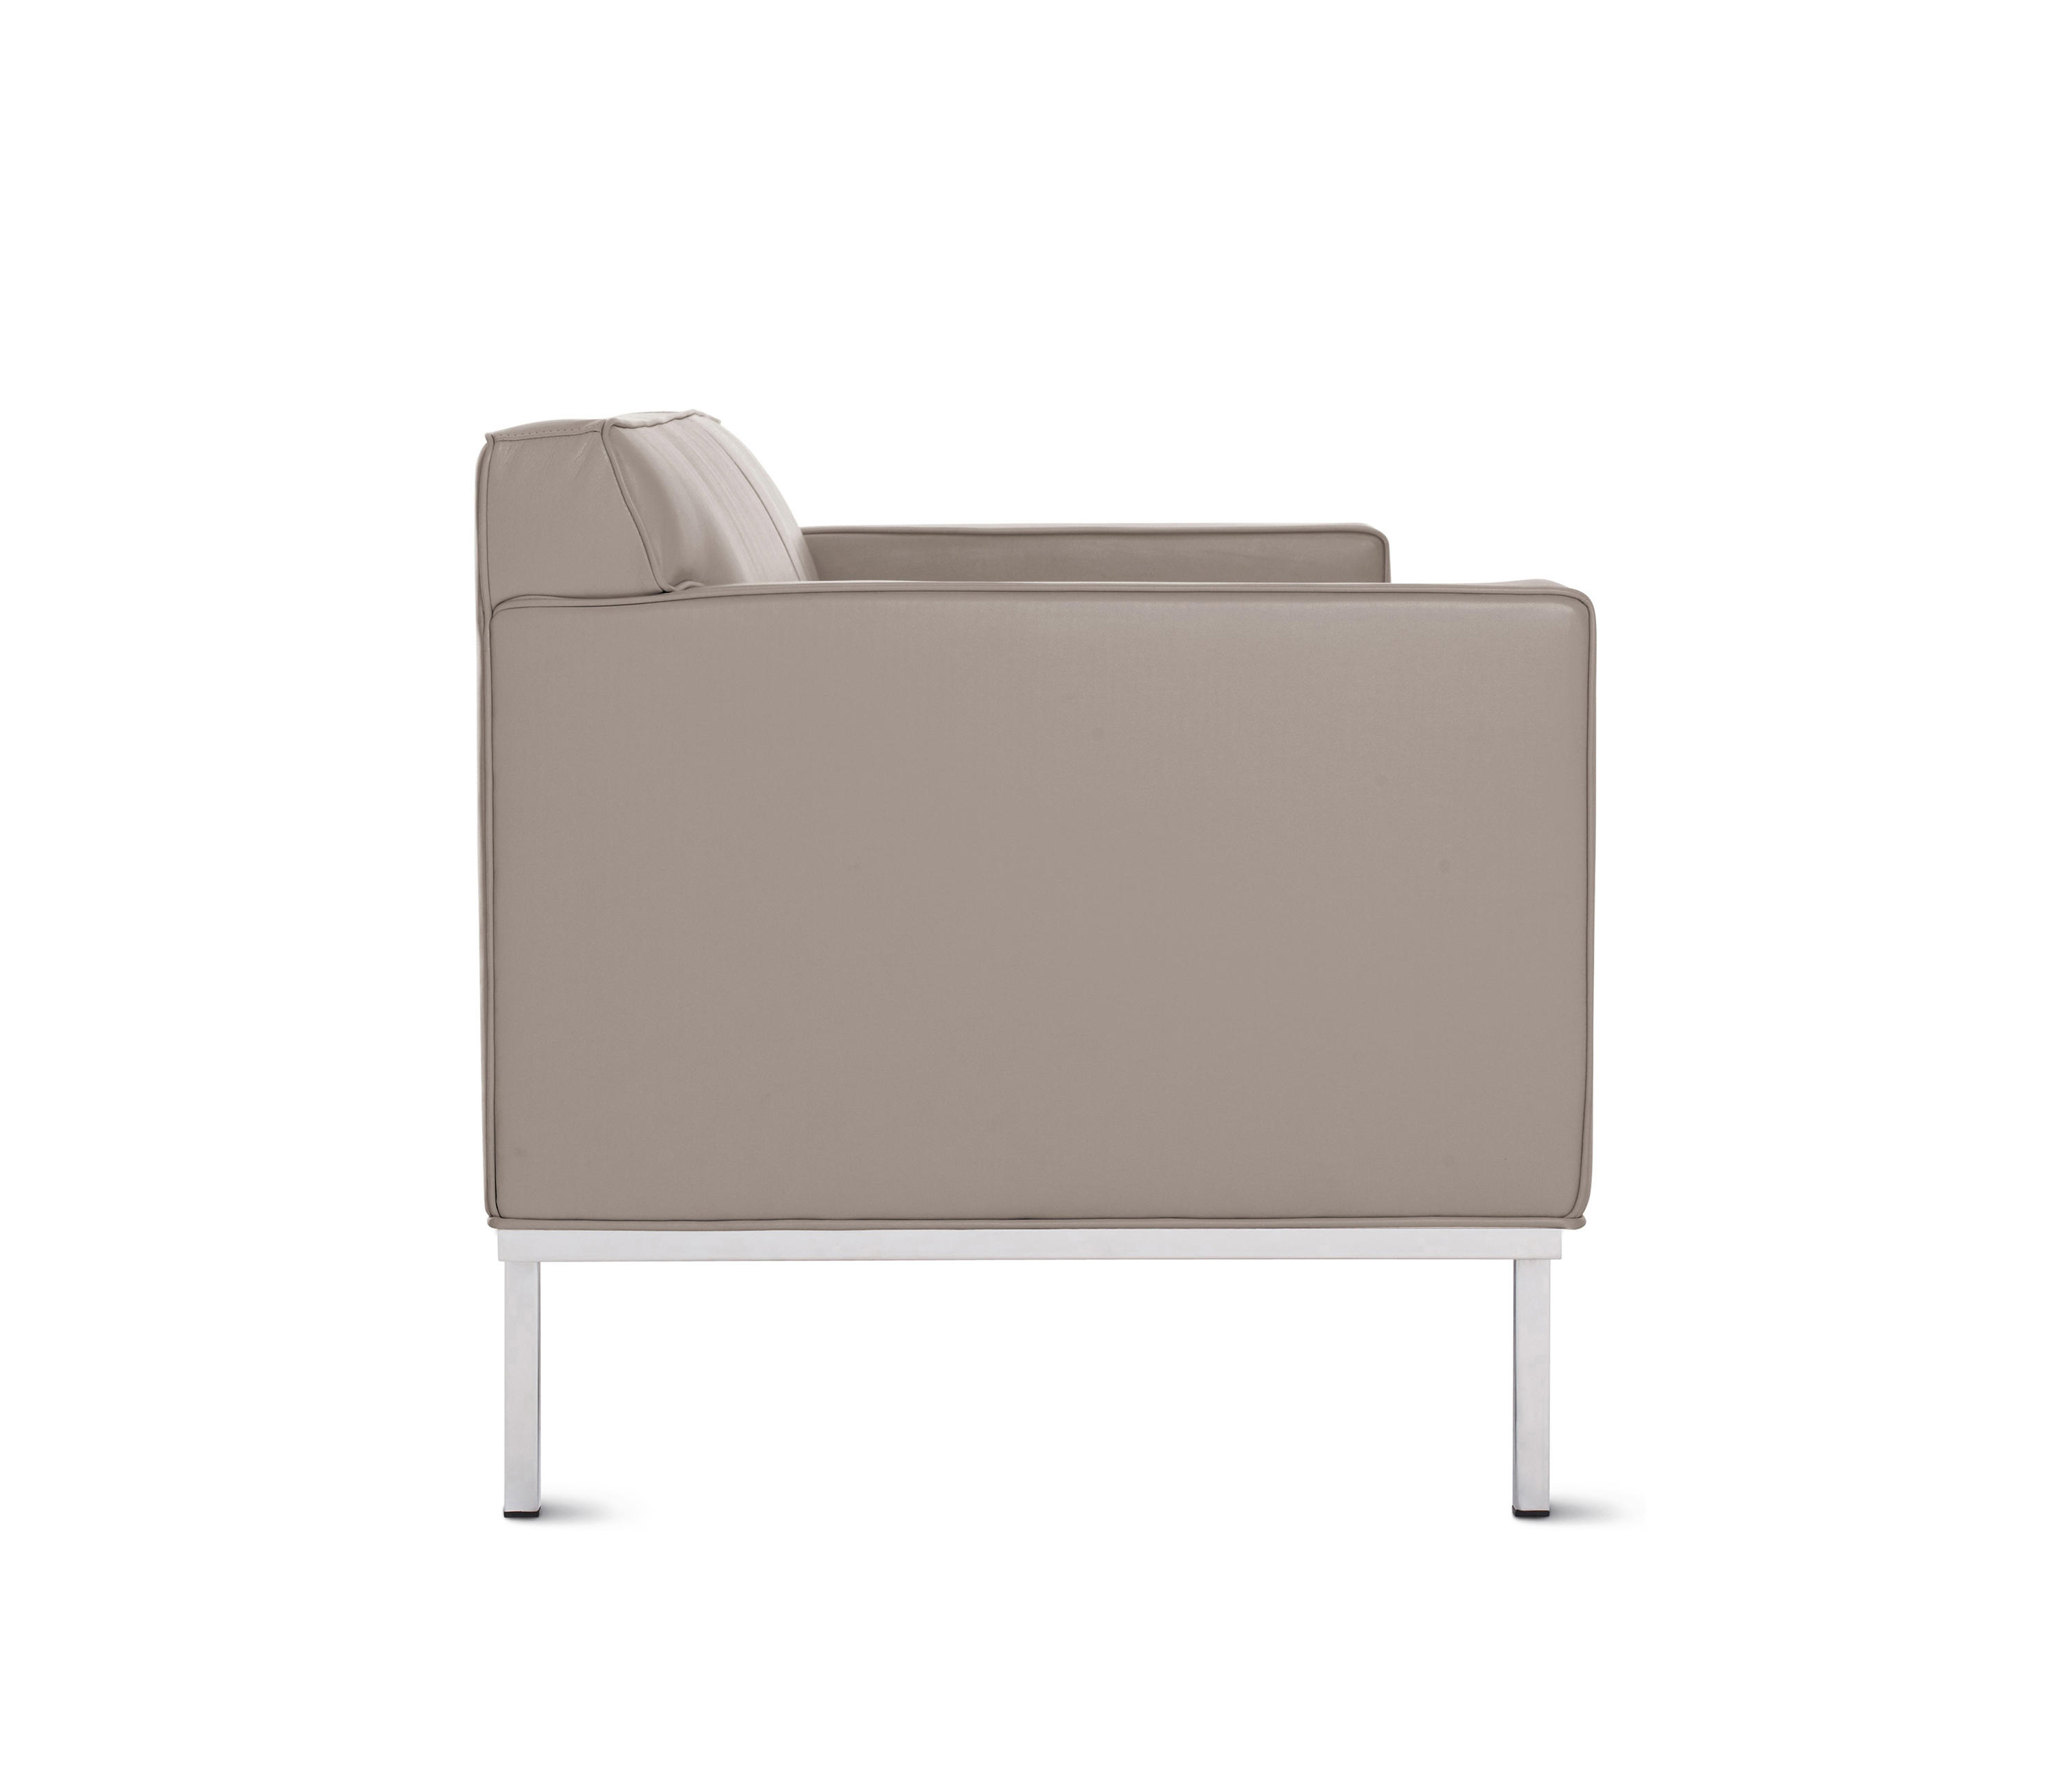 dwr theatre sofa review el corte ingles sofas baratos in leather from design within reach